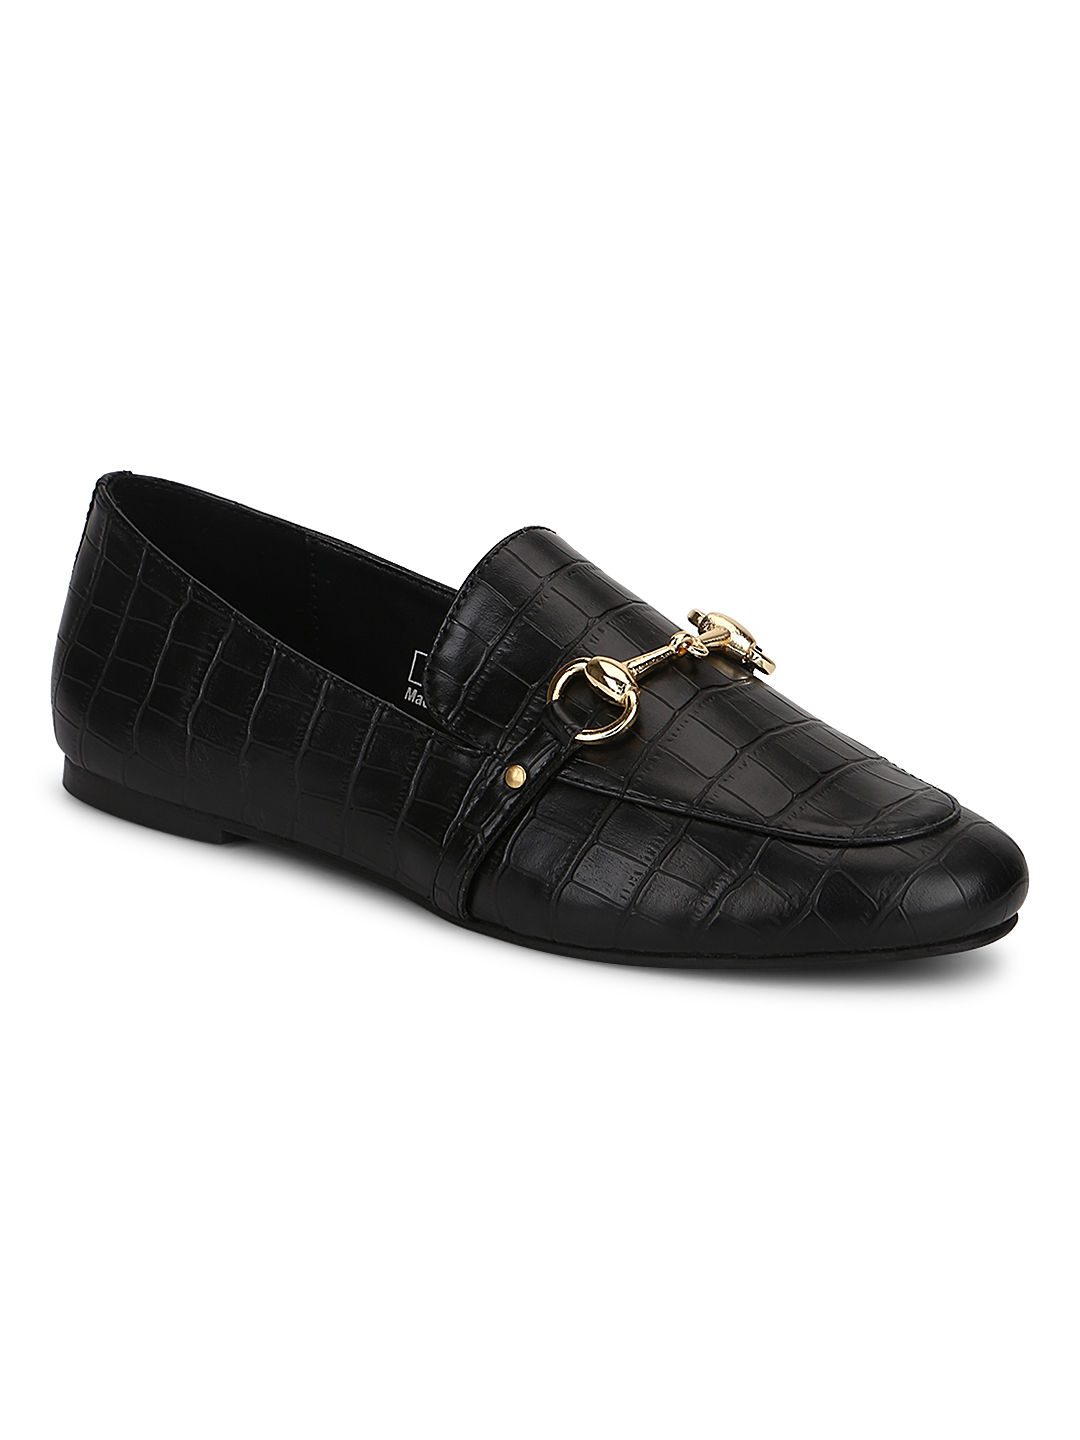 Truffle Collection   Truffle Collection Black Croc PU Loafer Shoes With Gold Chain